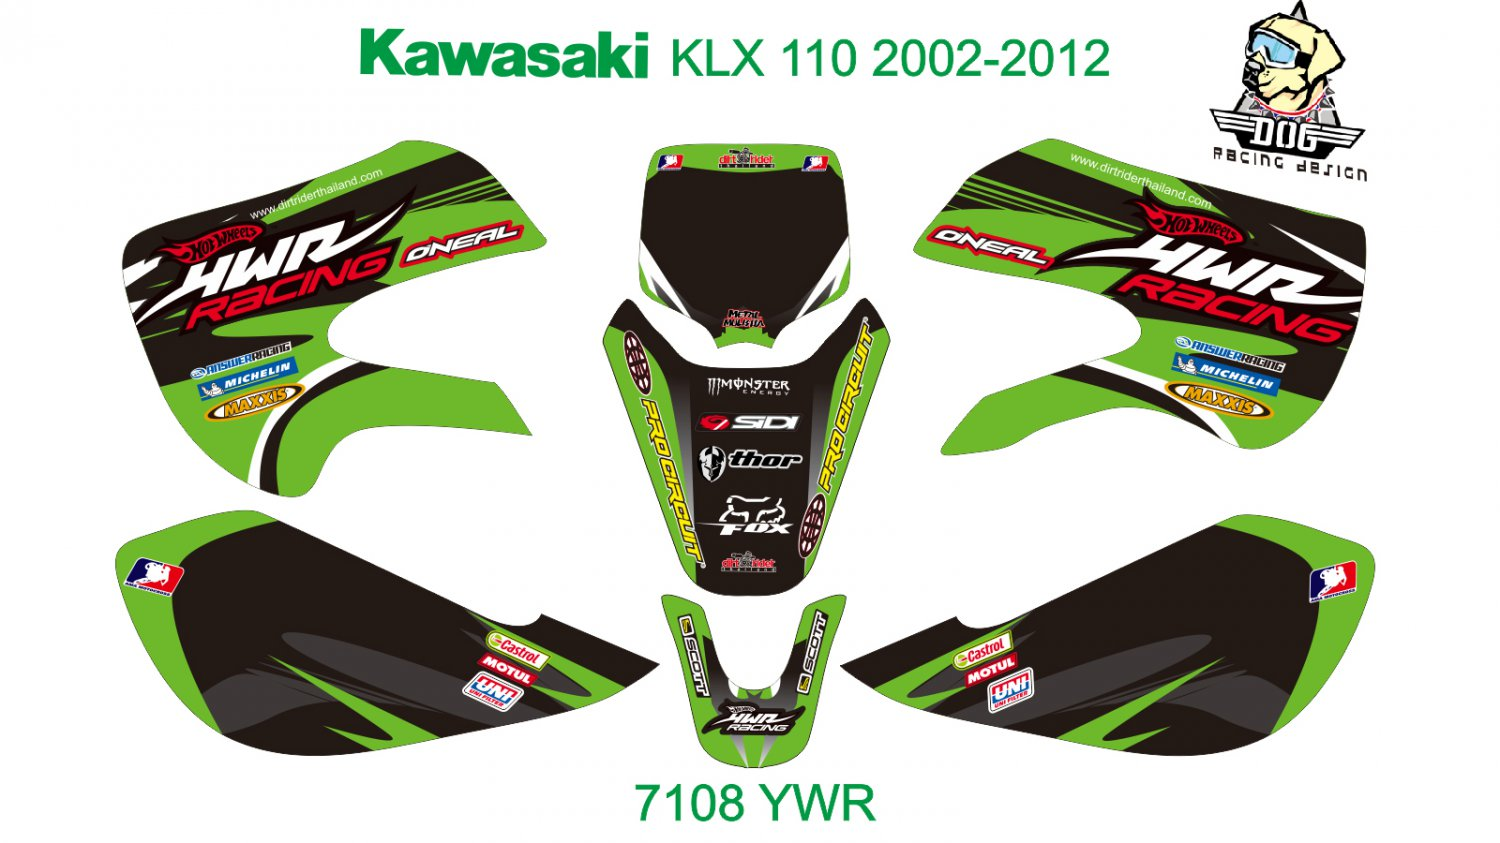 KAWASAKI KLX 110 2002-2012 GRAPHIC DECAL KIT CODE.7108